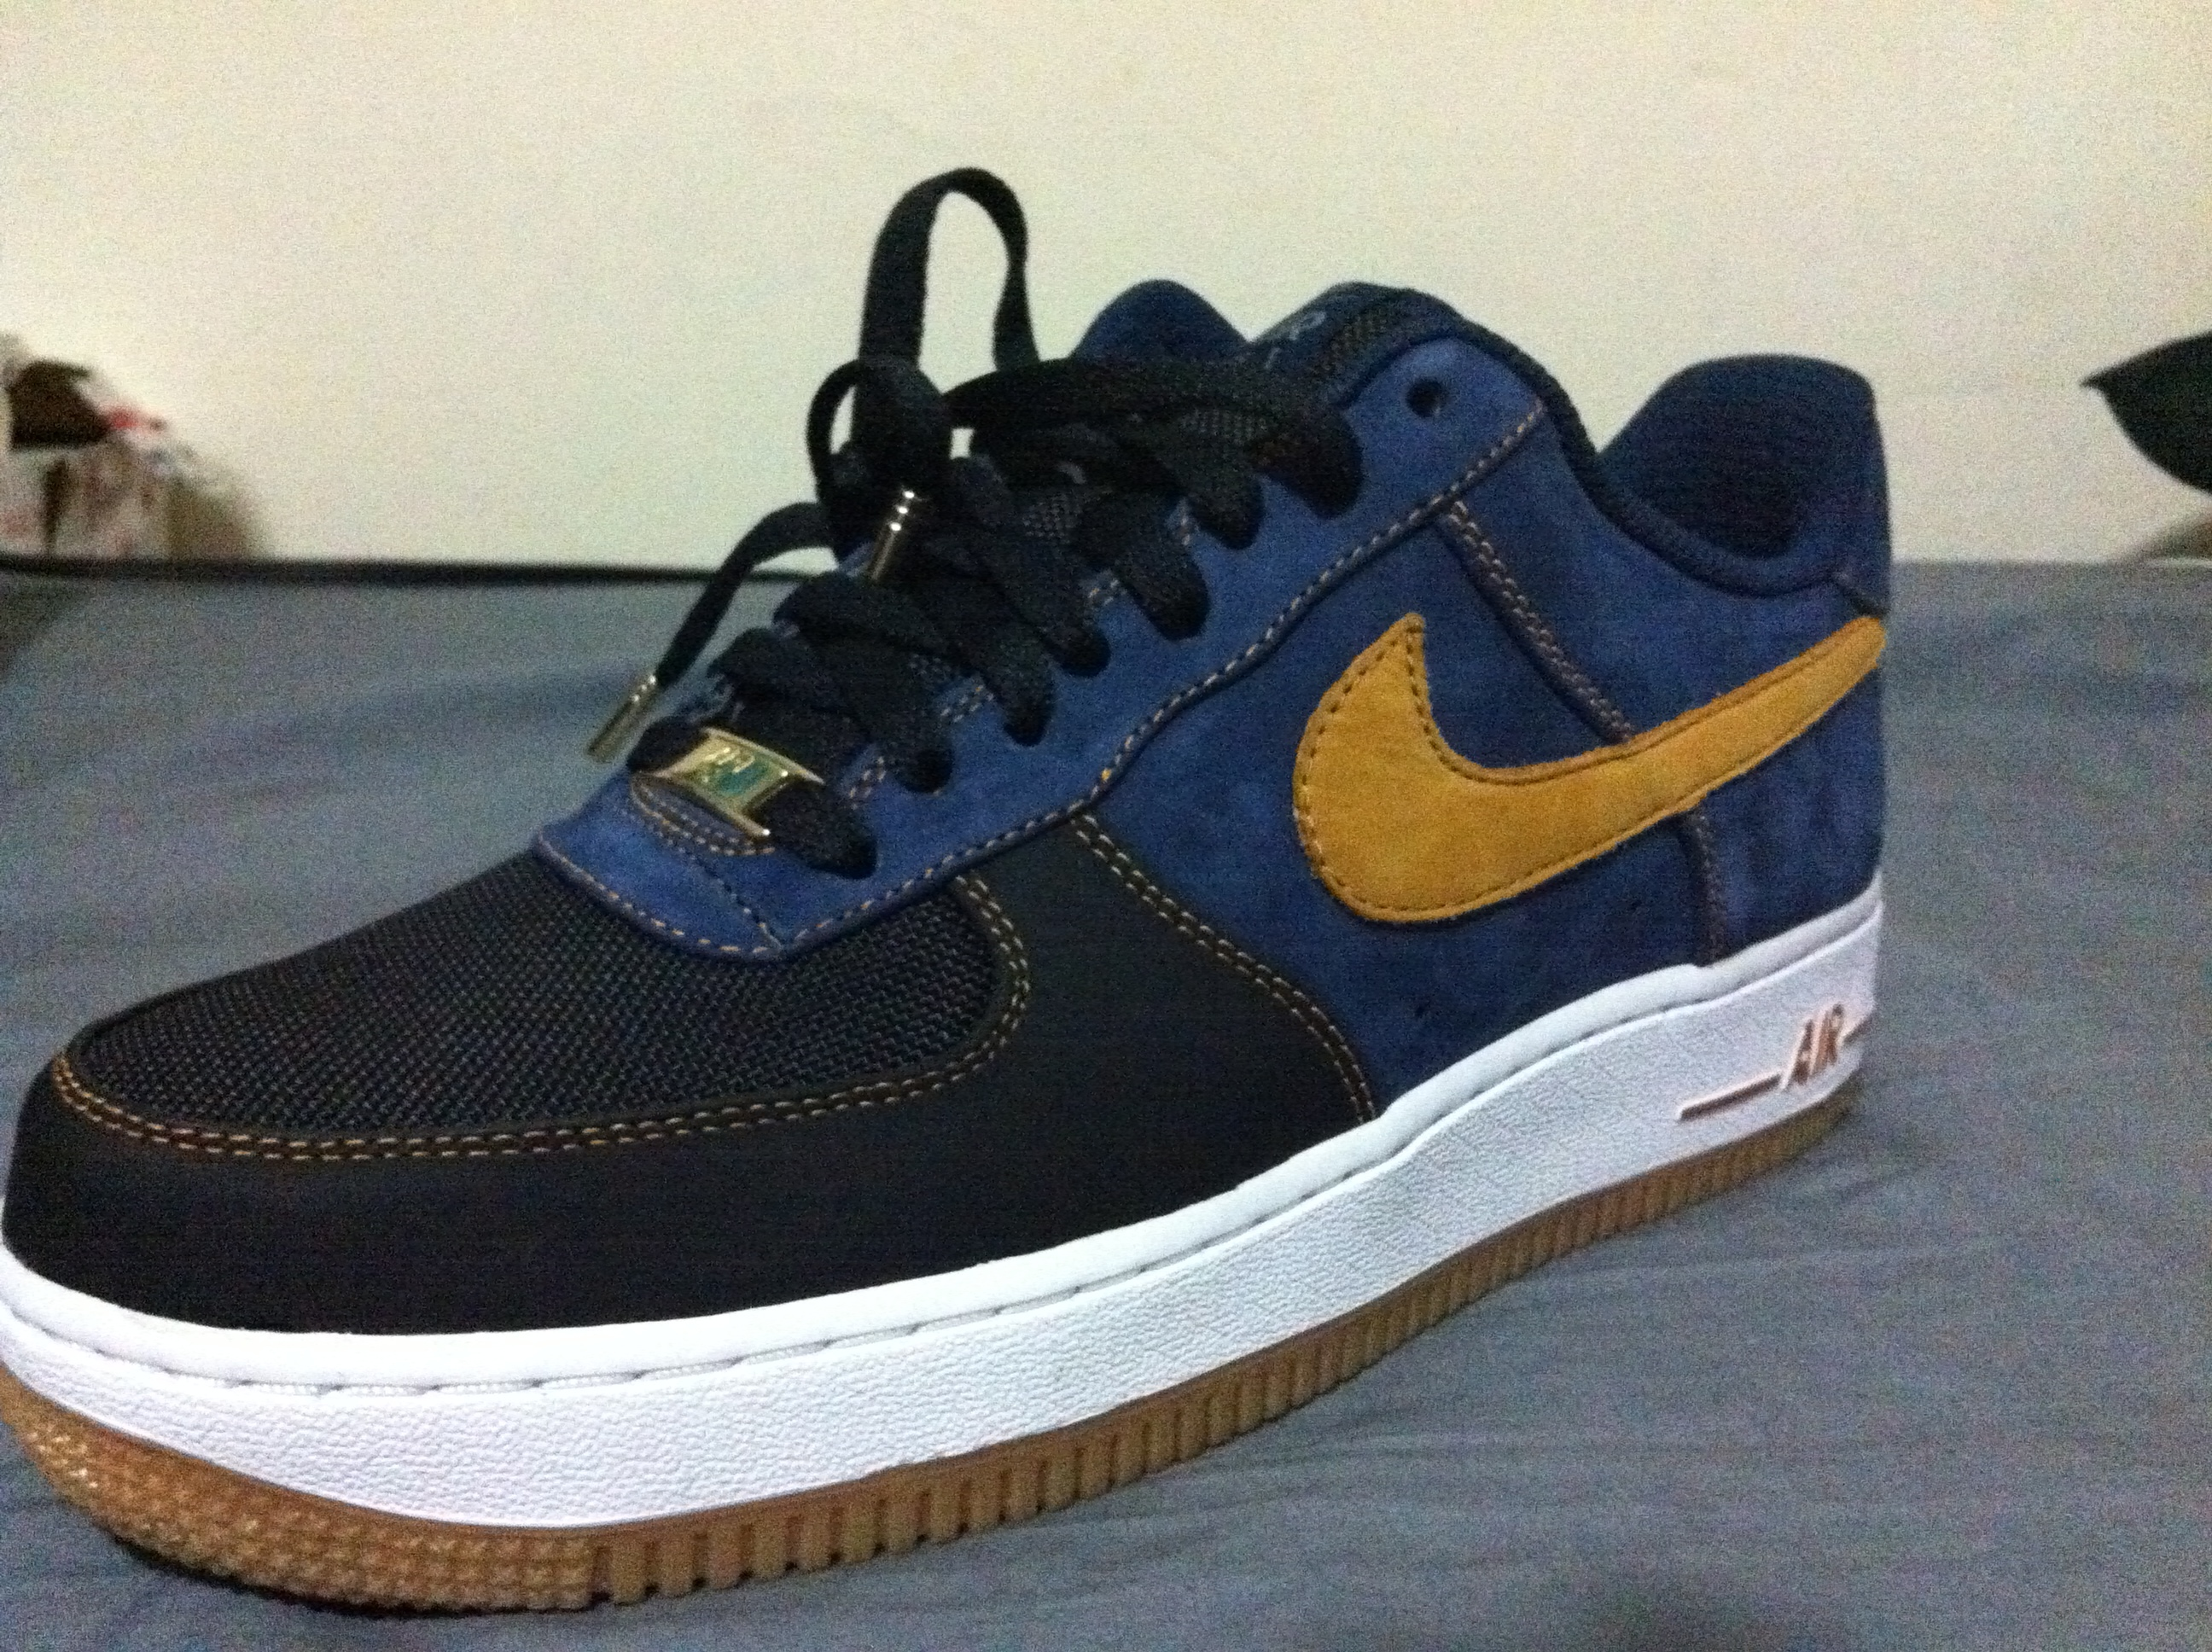 nike air force 1 id navy seals in search of. Black Bedroom Furniture Sets. Home Design Ideas